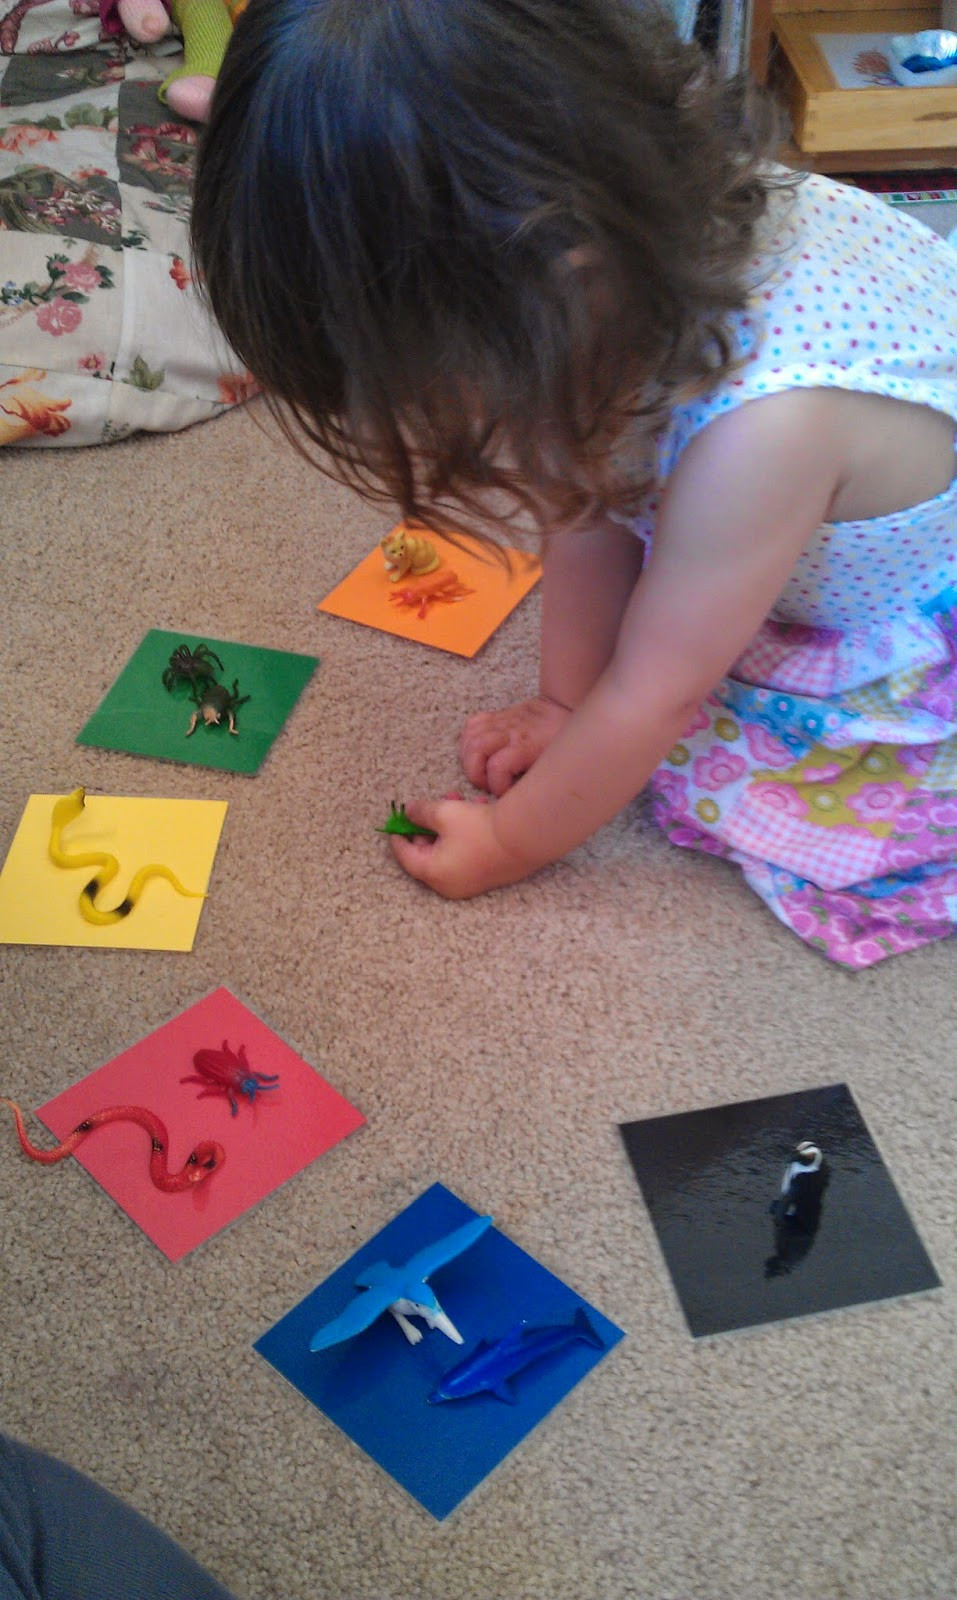 Best ideas about Learning Crafts For Toddlers . Save or Pin DIY Learning Activities for Toddlers Montessori Approach Now.